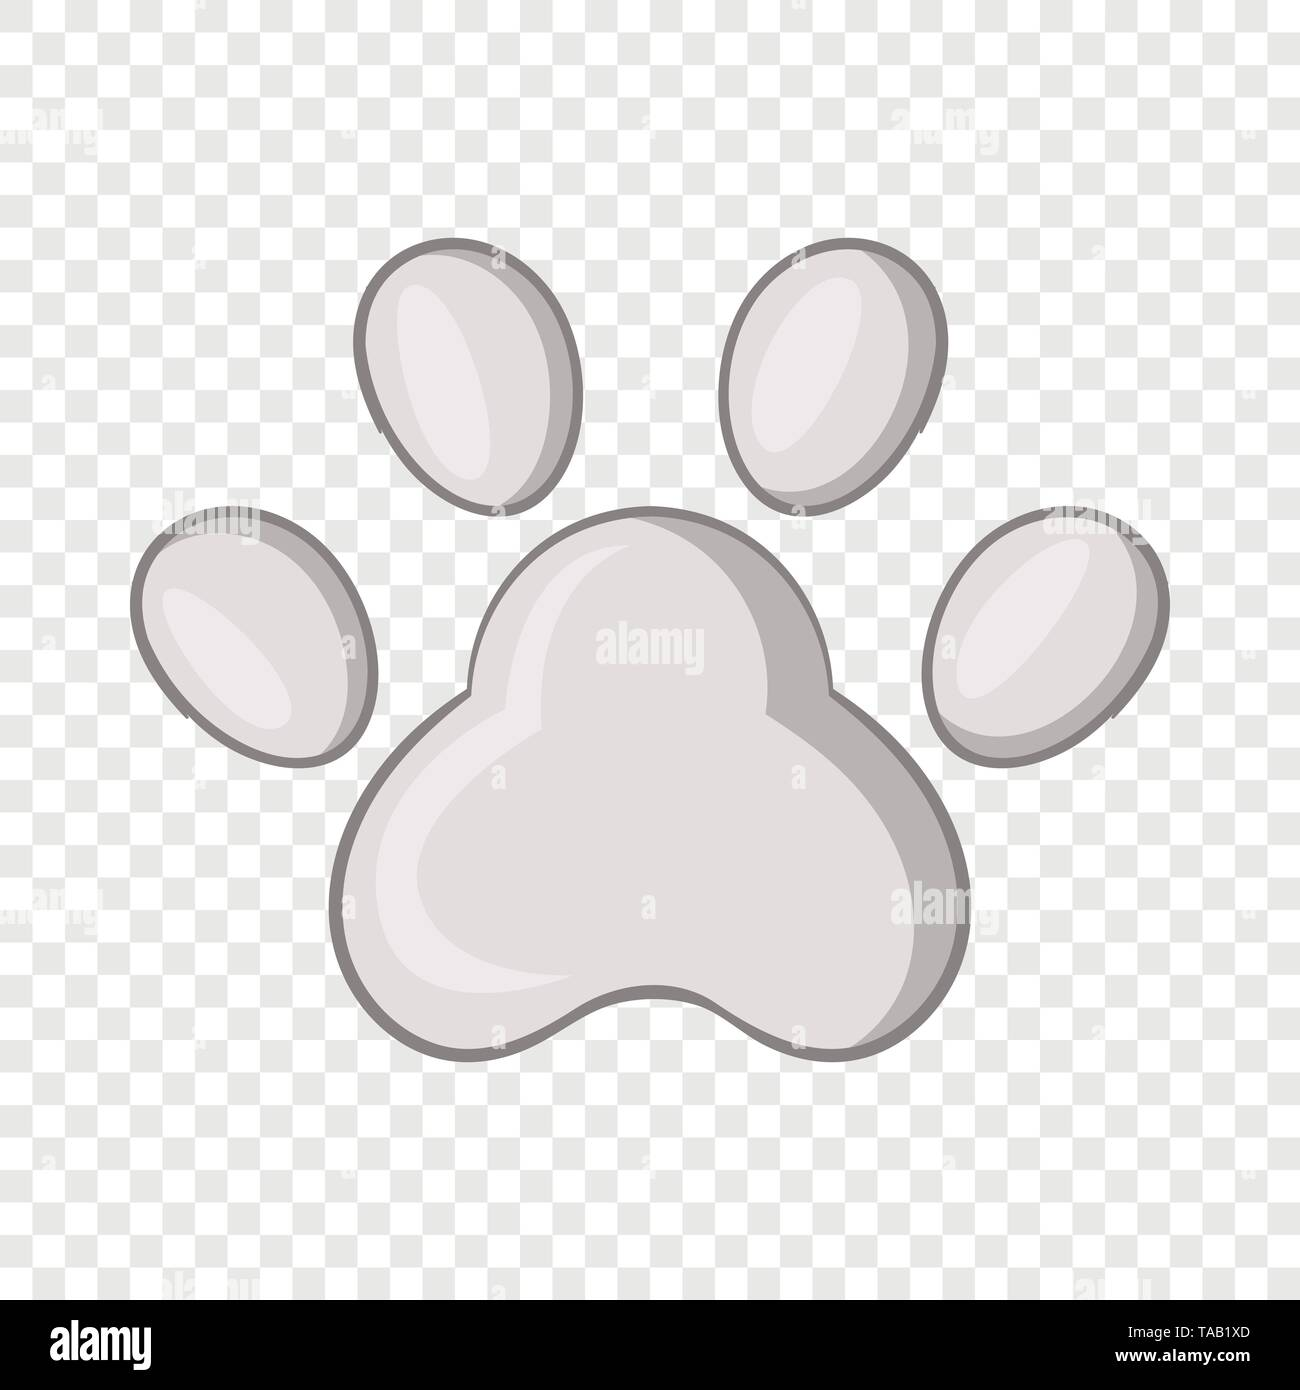 Footprint of cats foot icon, cartoon style - Stock Image